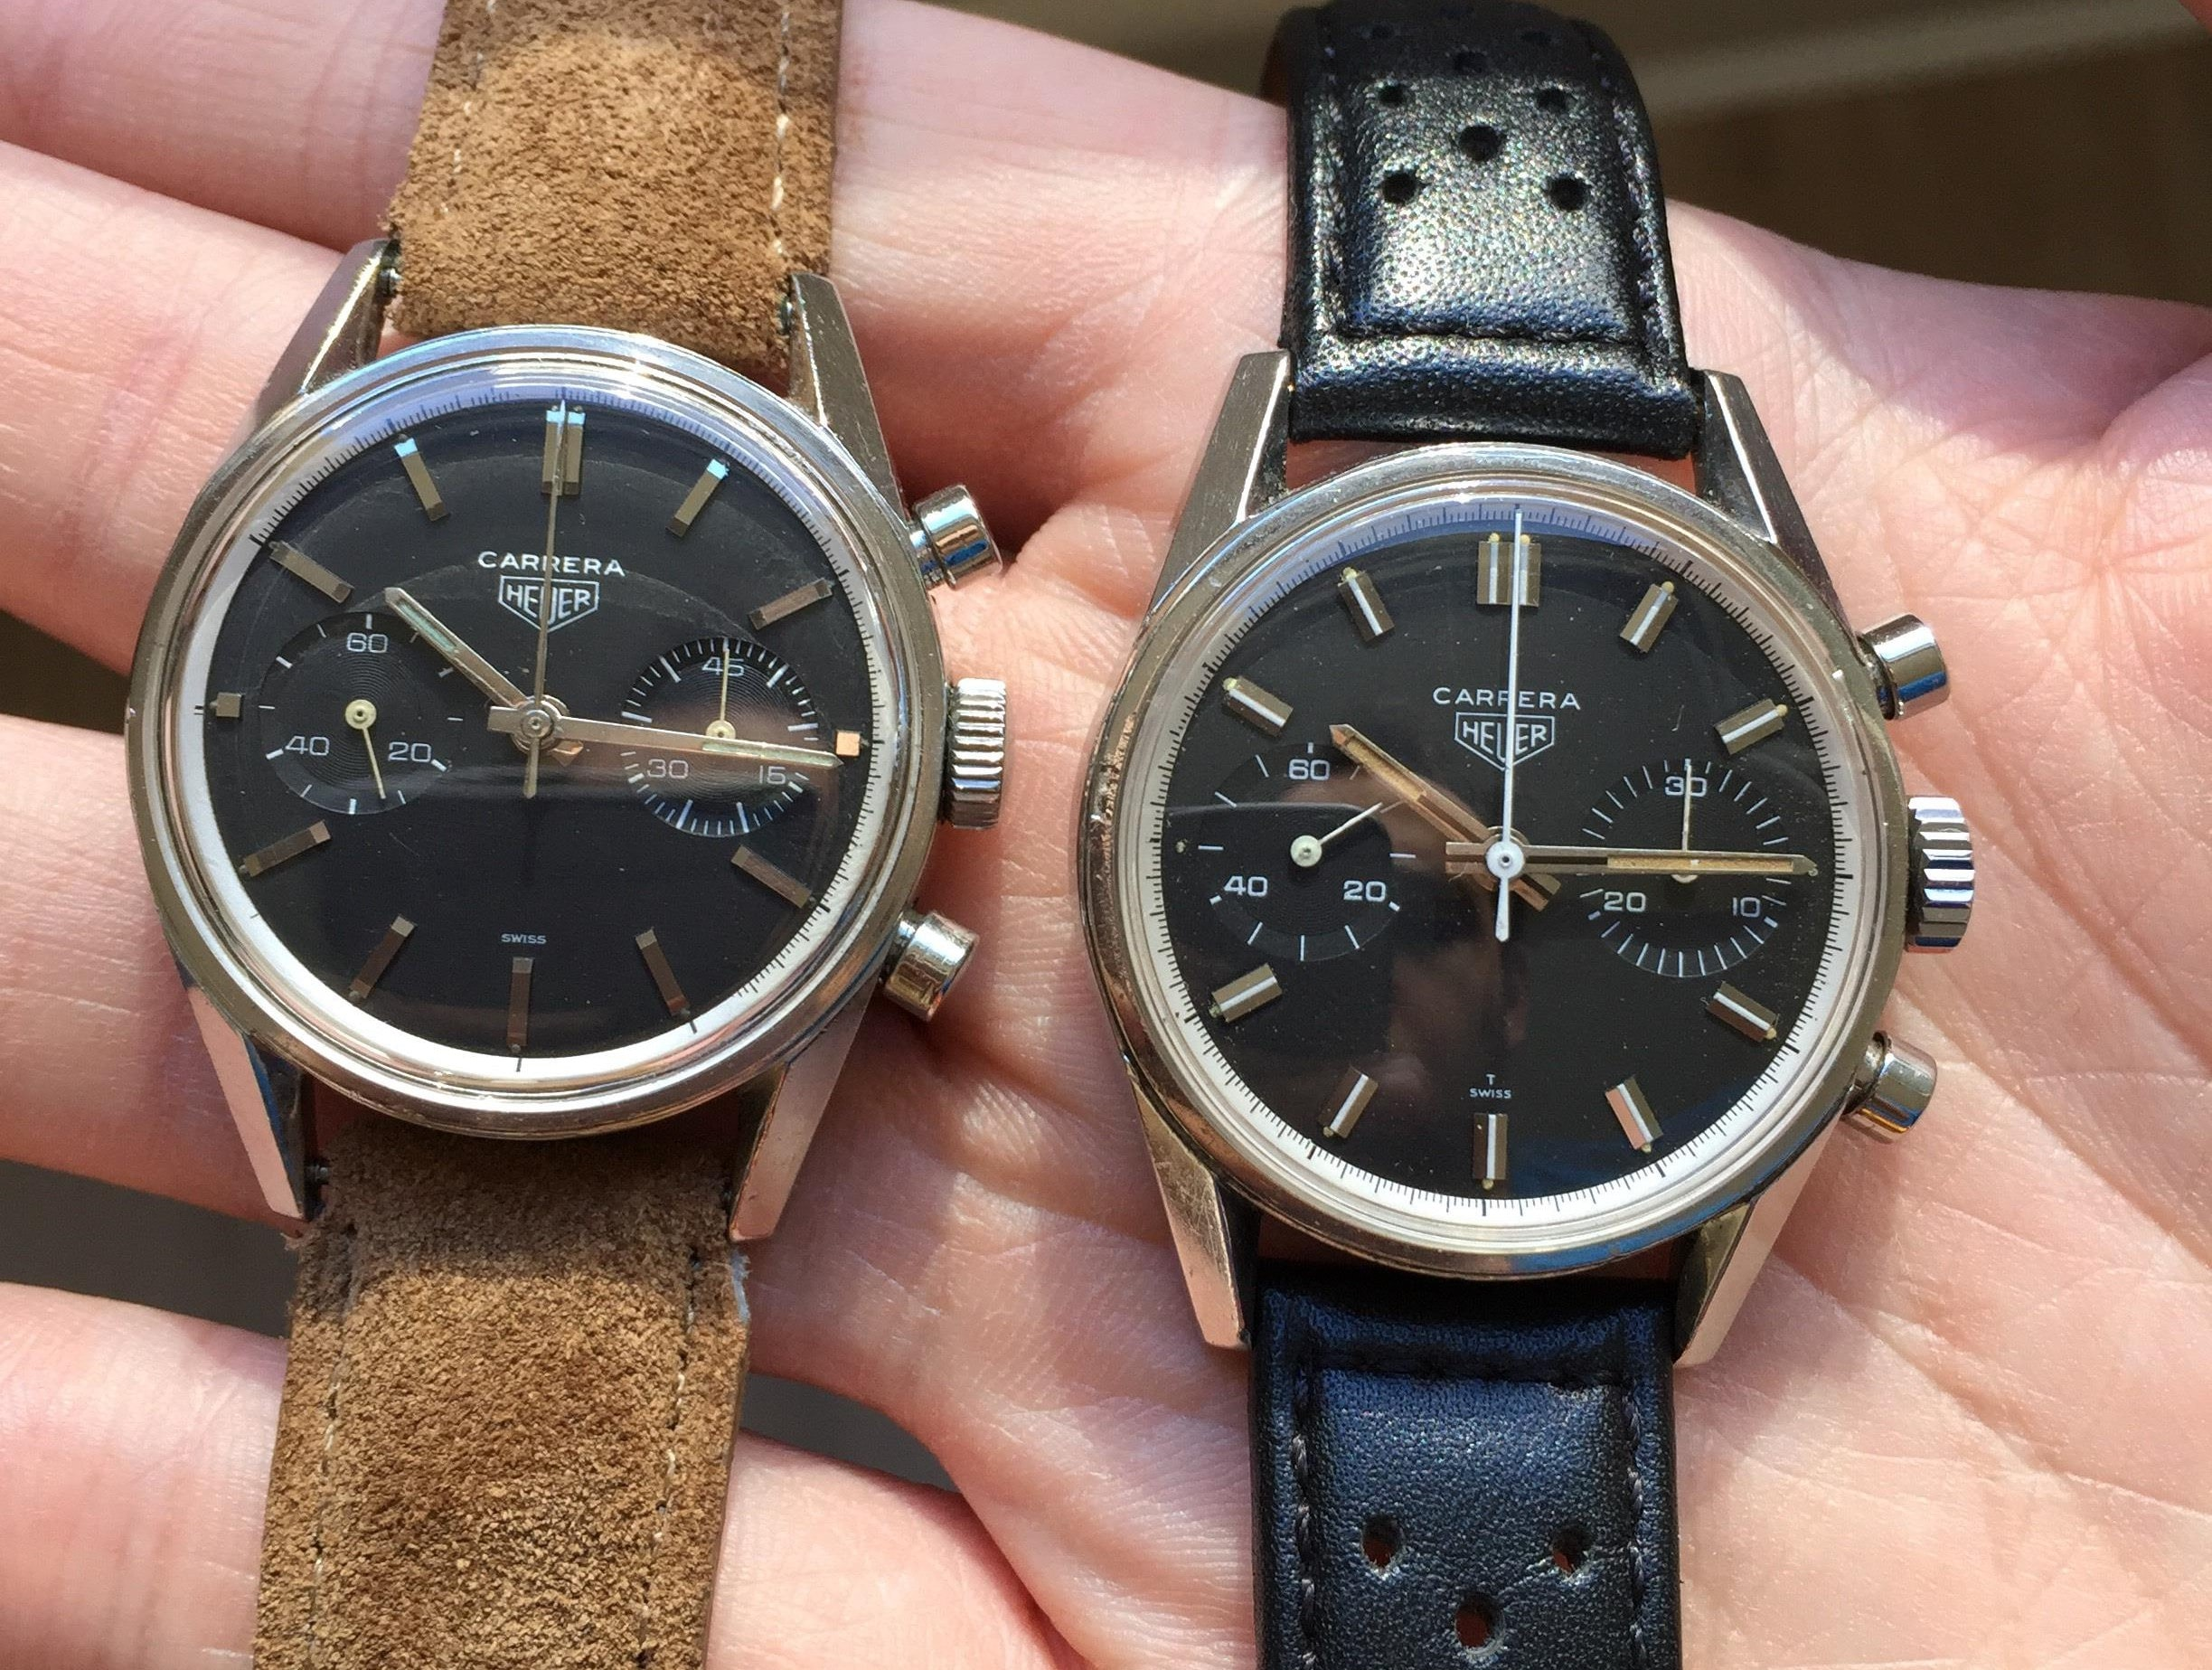 Heuer Carrera comparison Recommended Reading: Two Early Heuer Carreras Go Head-To-Head Recommended Reading: Two Early Heuer Carreras Go Head-To-Head Heuer comparison